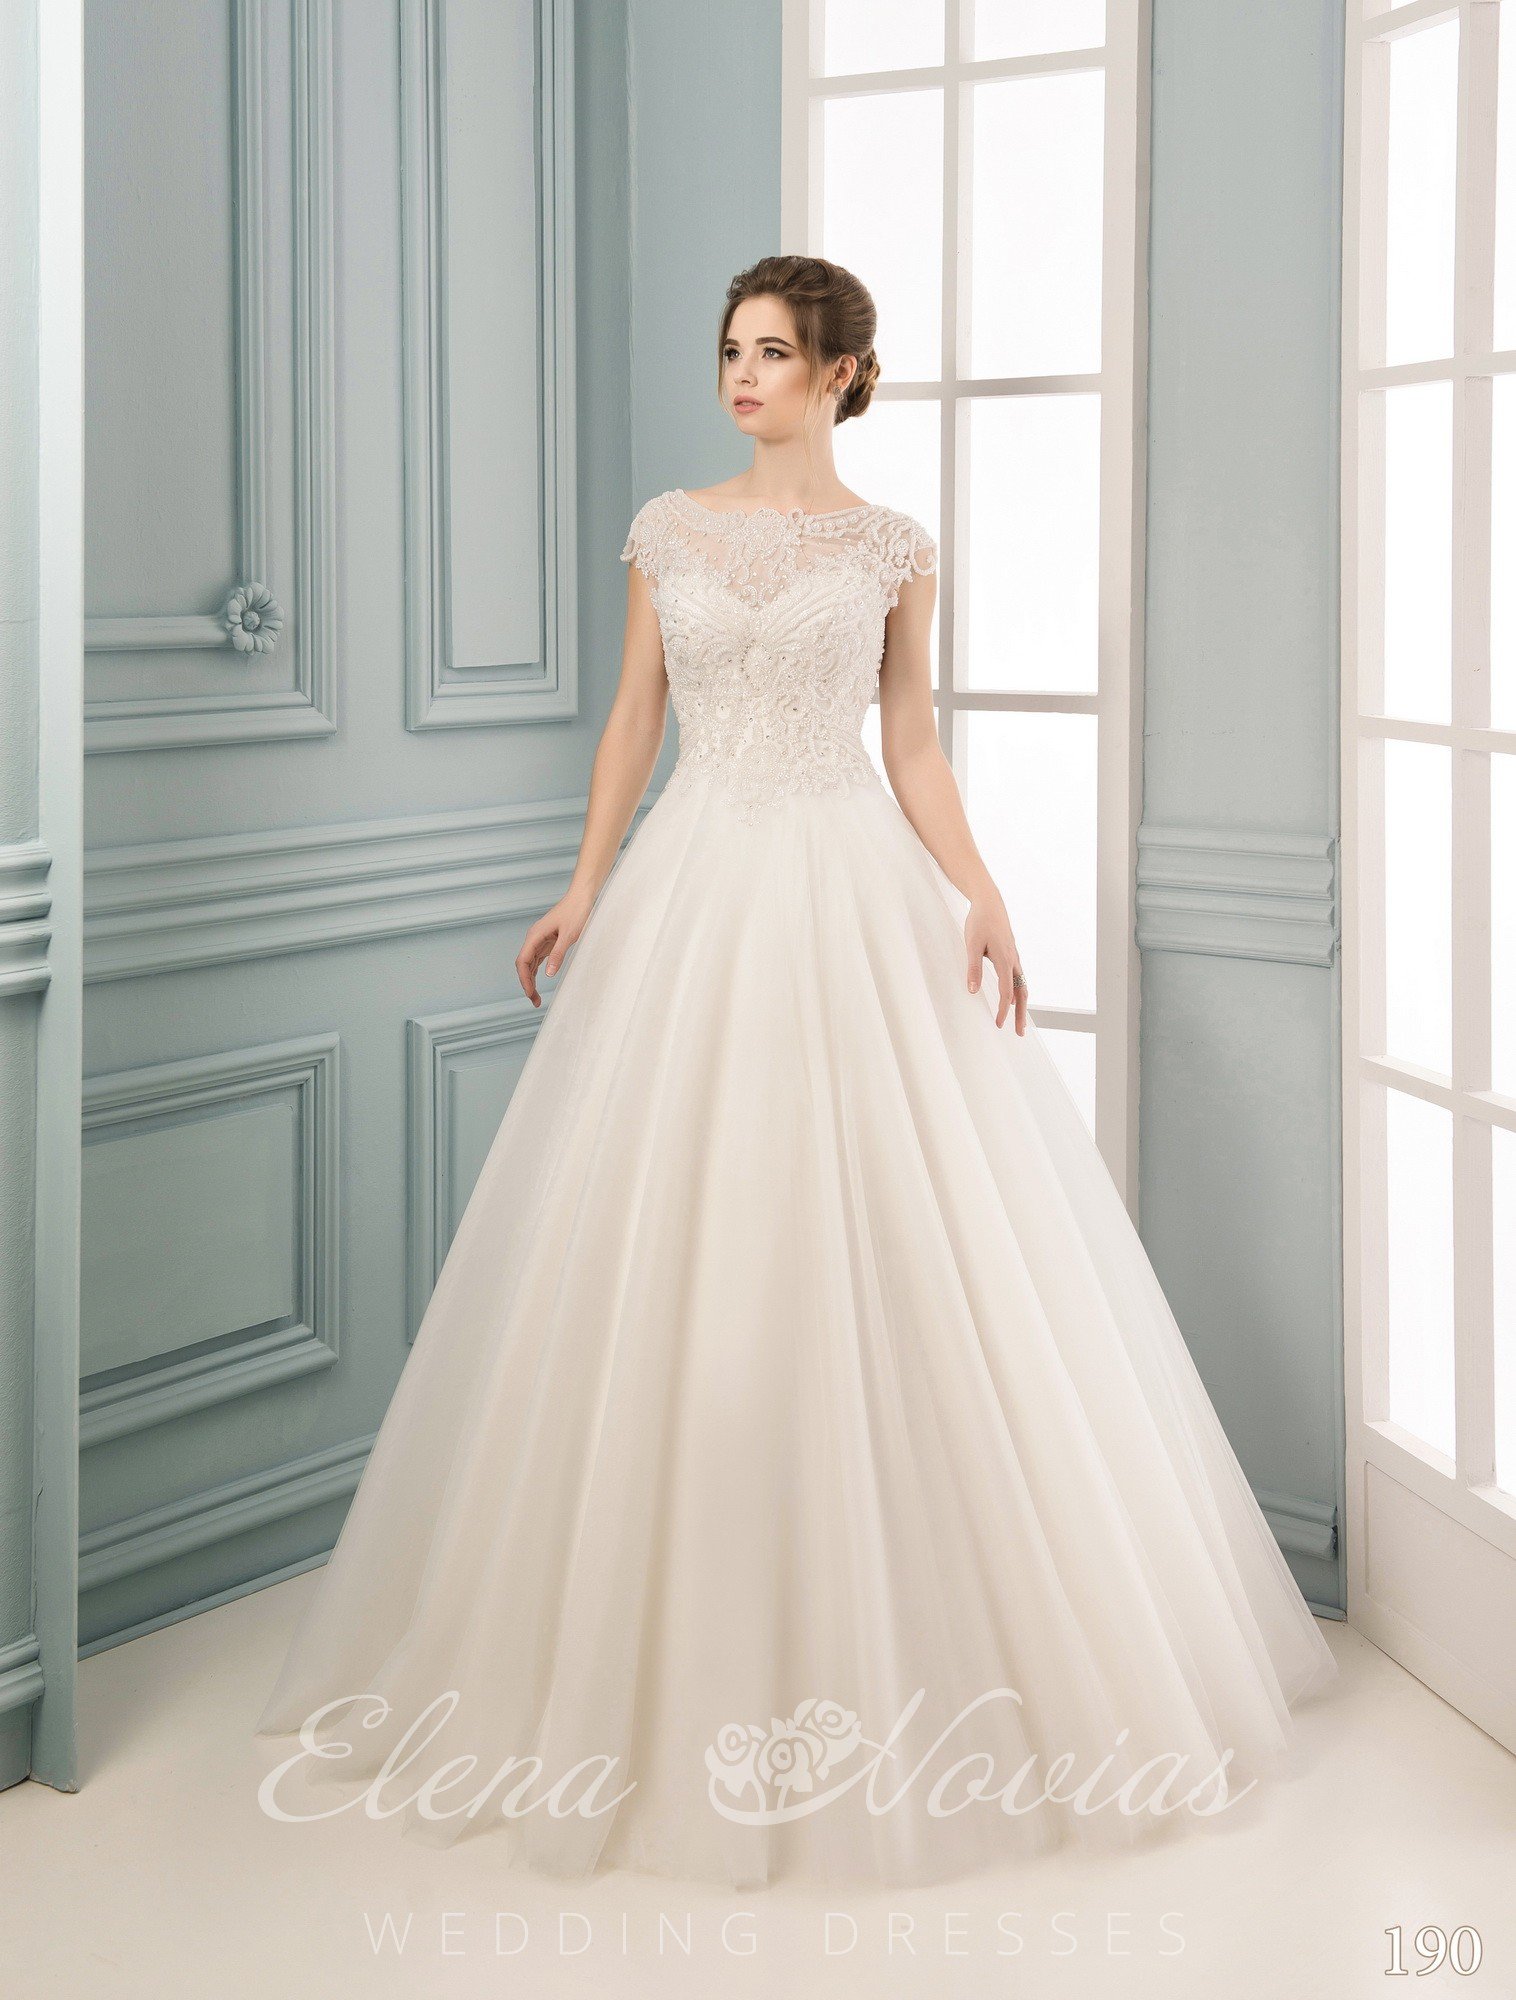 Wedding dress wholesale 190